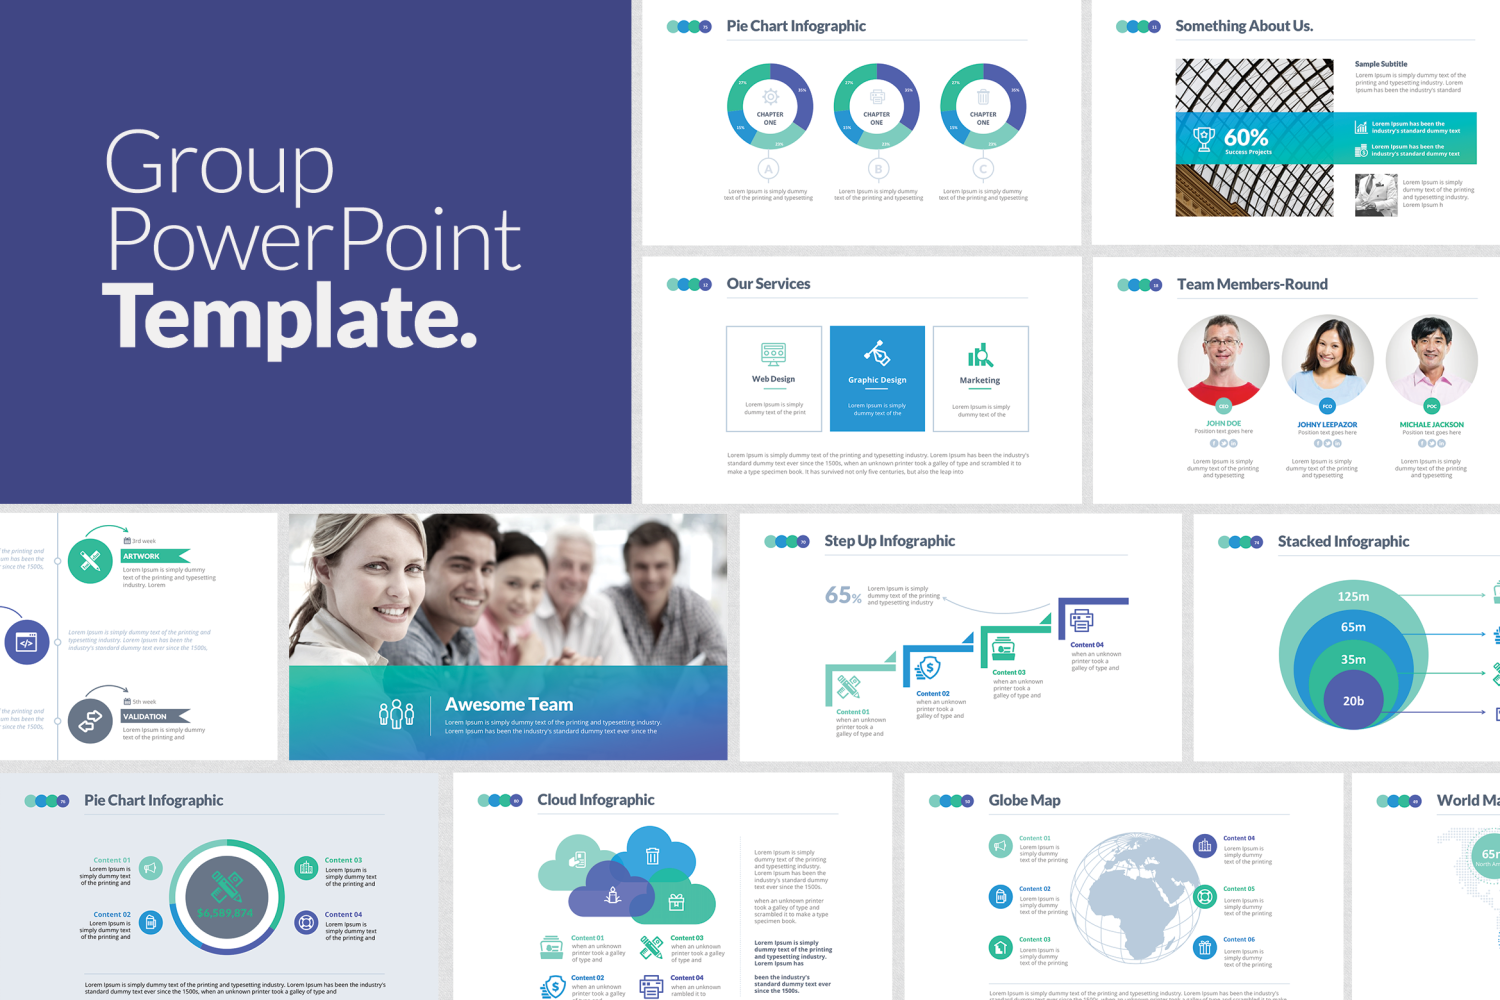 Group powerpoint template by designdistrict on envato elements group powerpoint template by designdistrict on envato elements toneelgroepblik Gallery